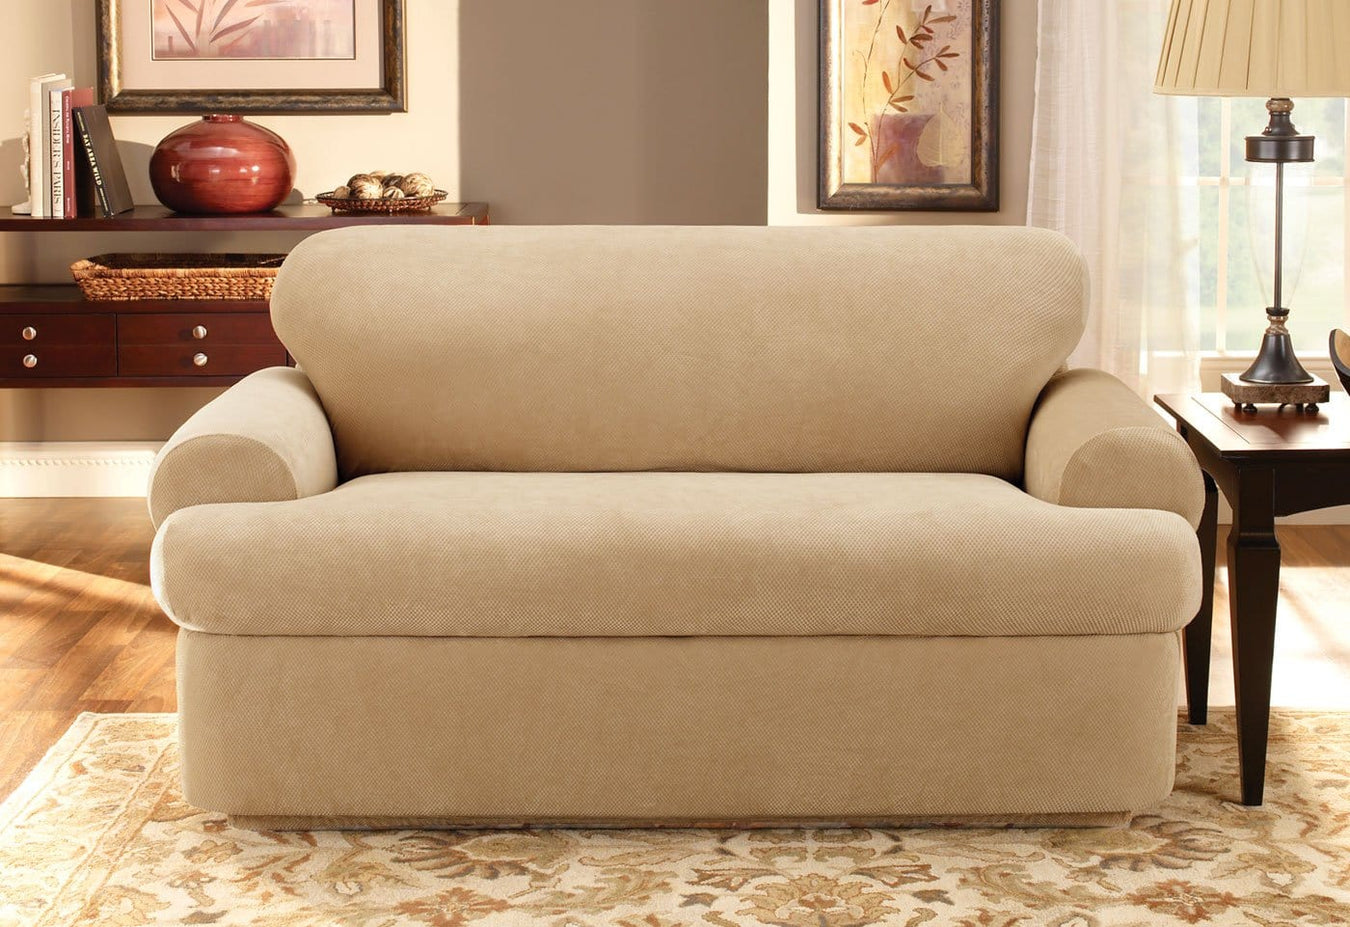 NEW Stretch Piqué 3 Piece With Back Cushion T Loveseat Slipcover Taupe pique